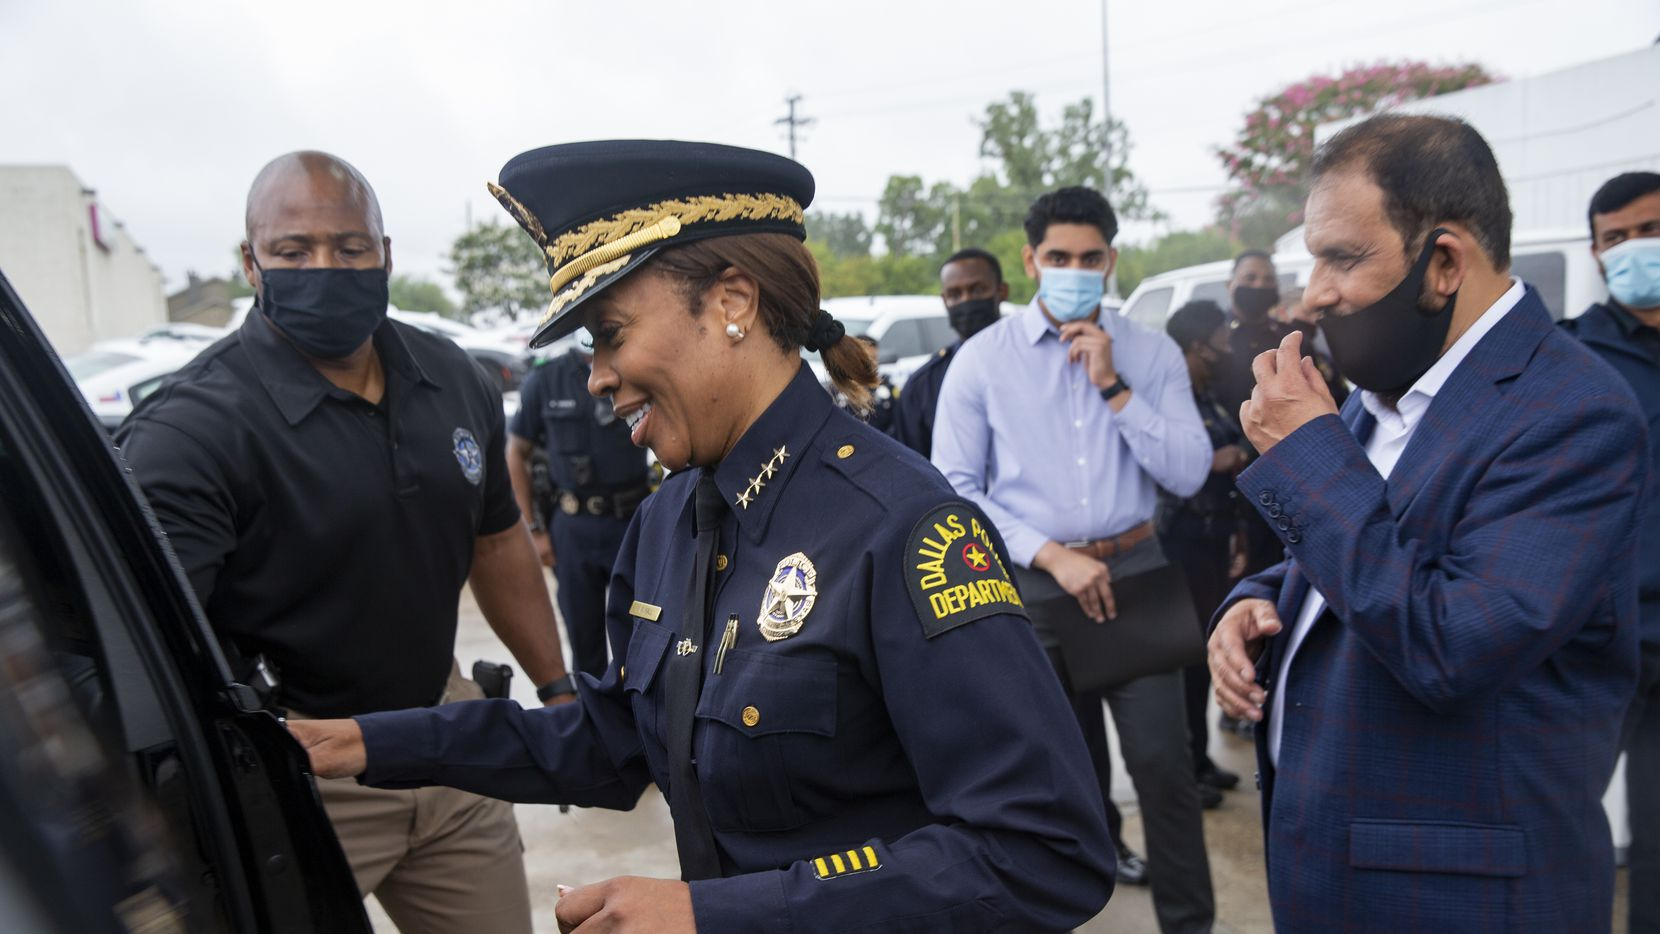 Dallas Police Chief U. Reneé Hall gets in her car following a press conference about the expansion of their camera-monitoring pilot program called Starlight at a Chevron Gas Station at 9791 Forest Lane on Tuesday, Sept. 22, 2020 in Dallas. Mayor Eric Johnson is a strong proponent of the police department, opposing any cuts to its budget.